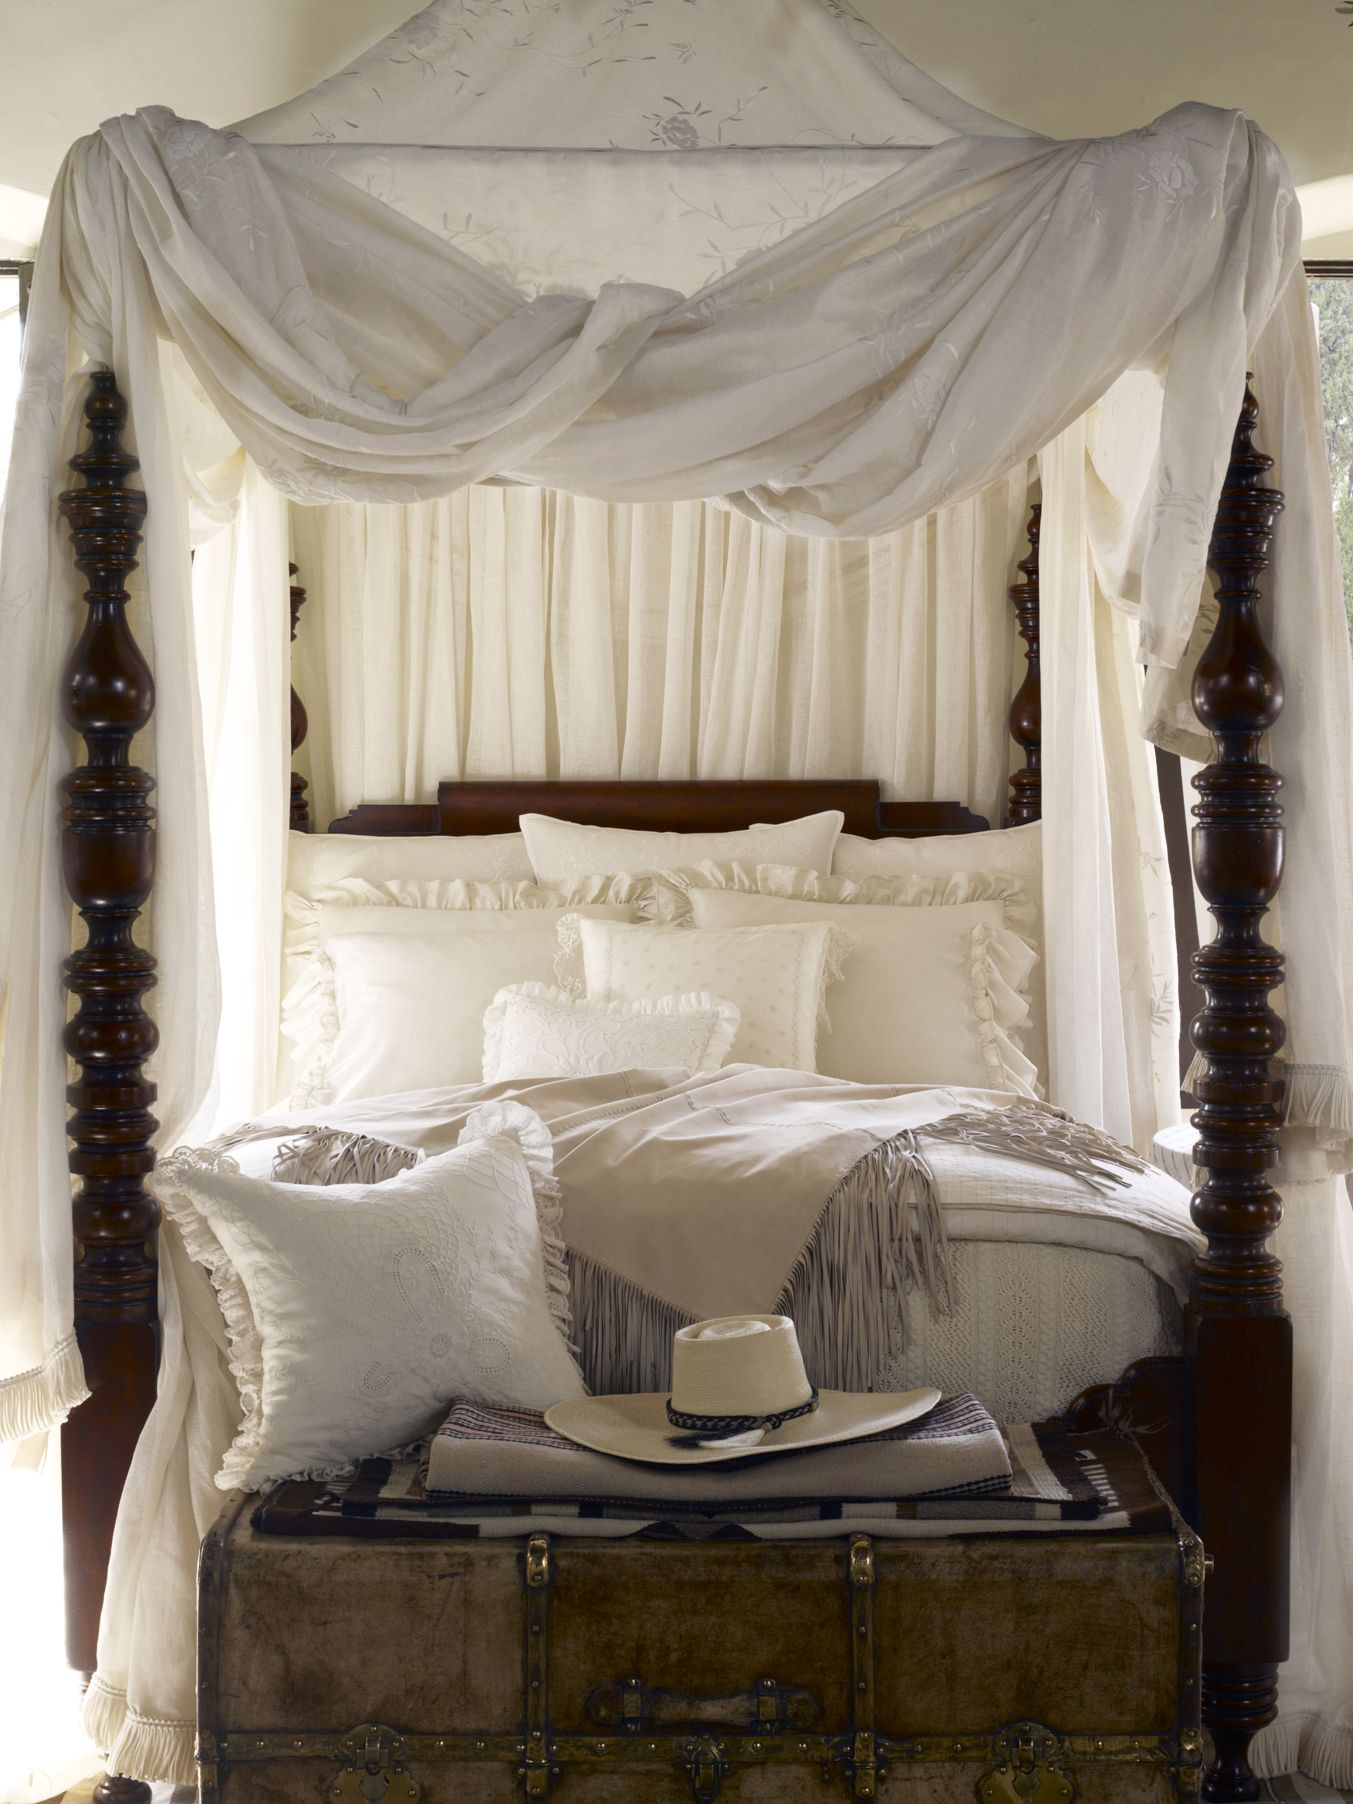 Romantic four post canopy bed from ralph lauren home in - Pictures of canopy beds ...